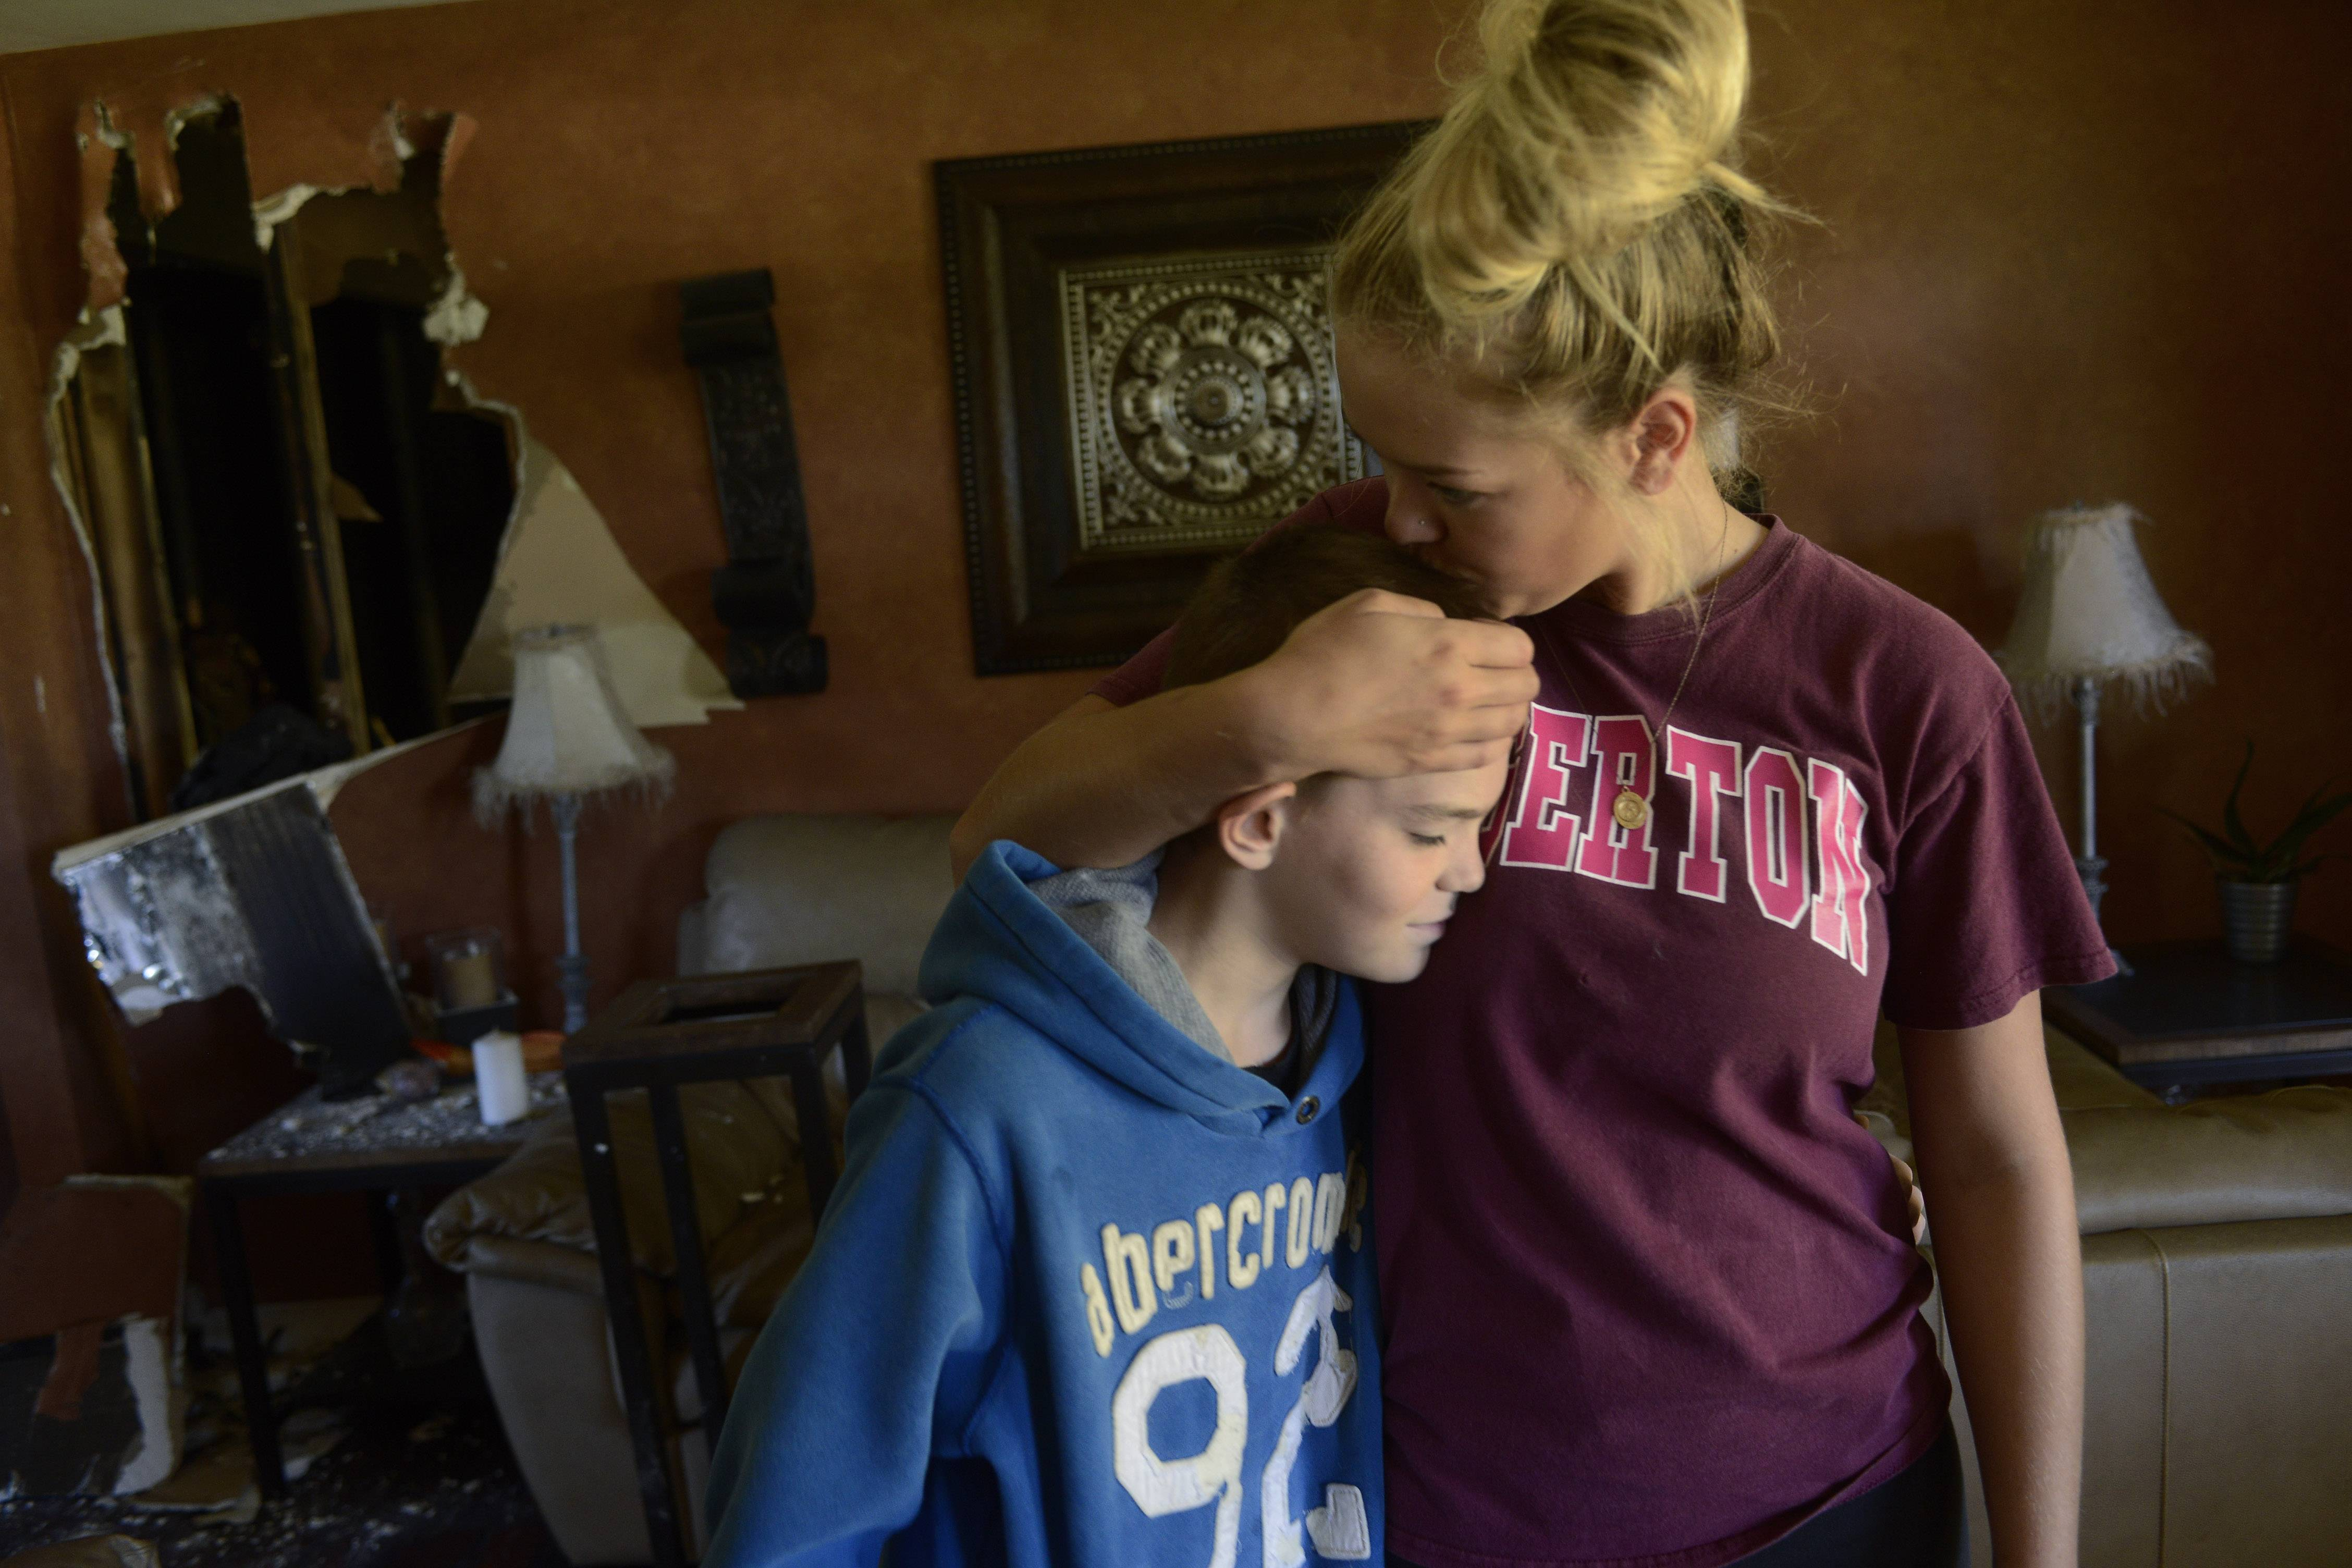 Jessica Lotesto gives her 13-year-old brother Dominic Laskero a kiss on top of his head as they reflect on their escape from a fire in their Hoffman Estates home Sunday morning. Nicky was instrumental in getting his sister and 77-year-old grandmother out of the burning house.